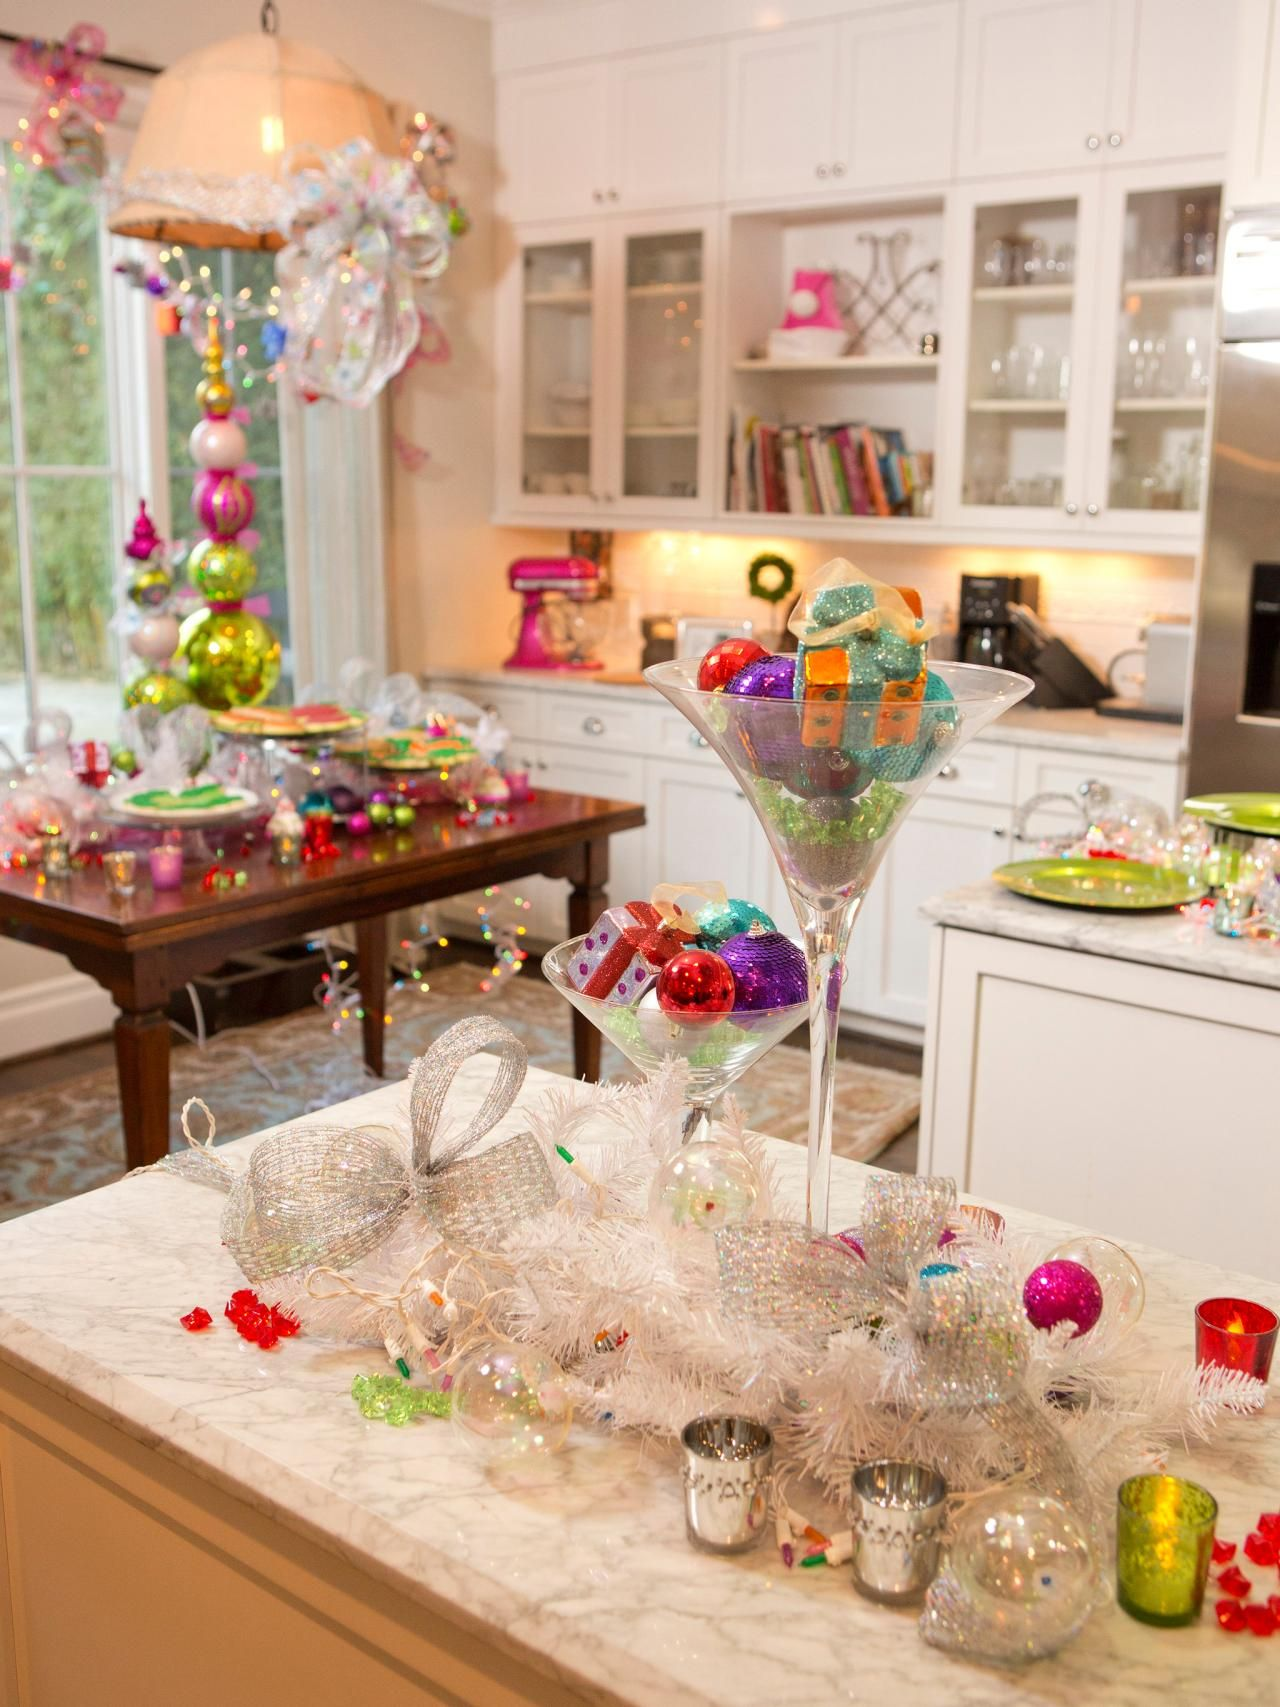 This Colorful Kitchen Display Is From Haylie Duffs Party Preparations,